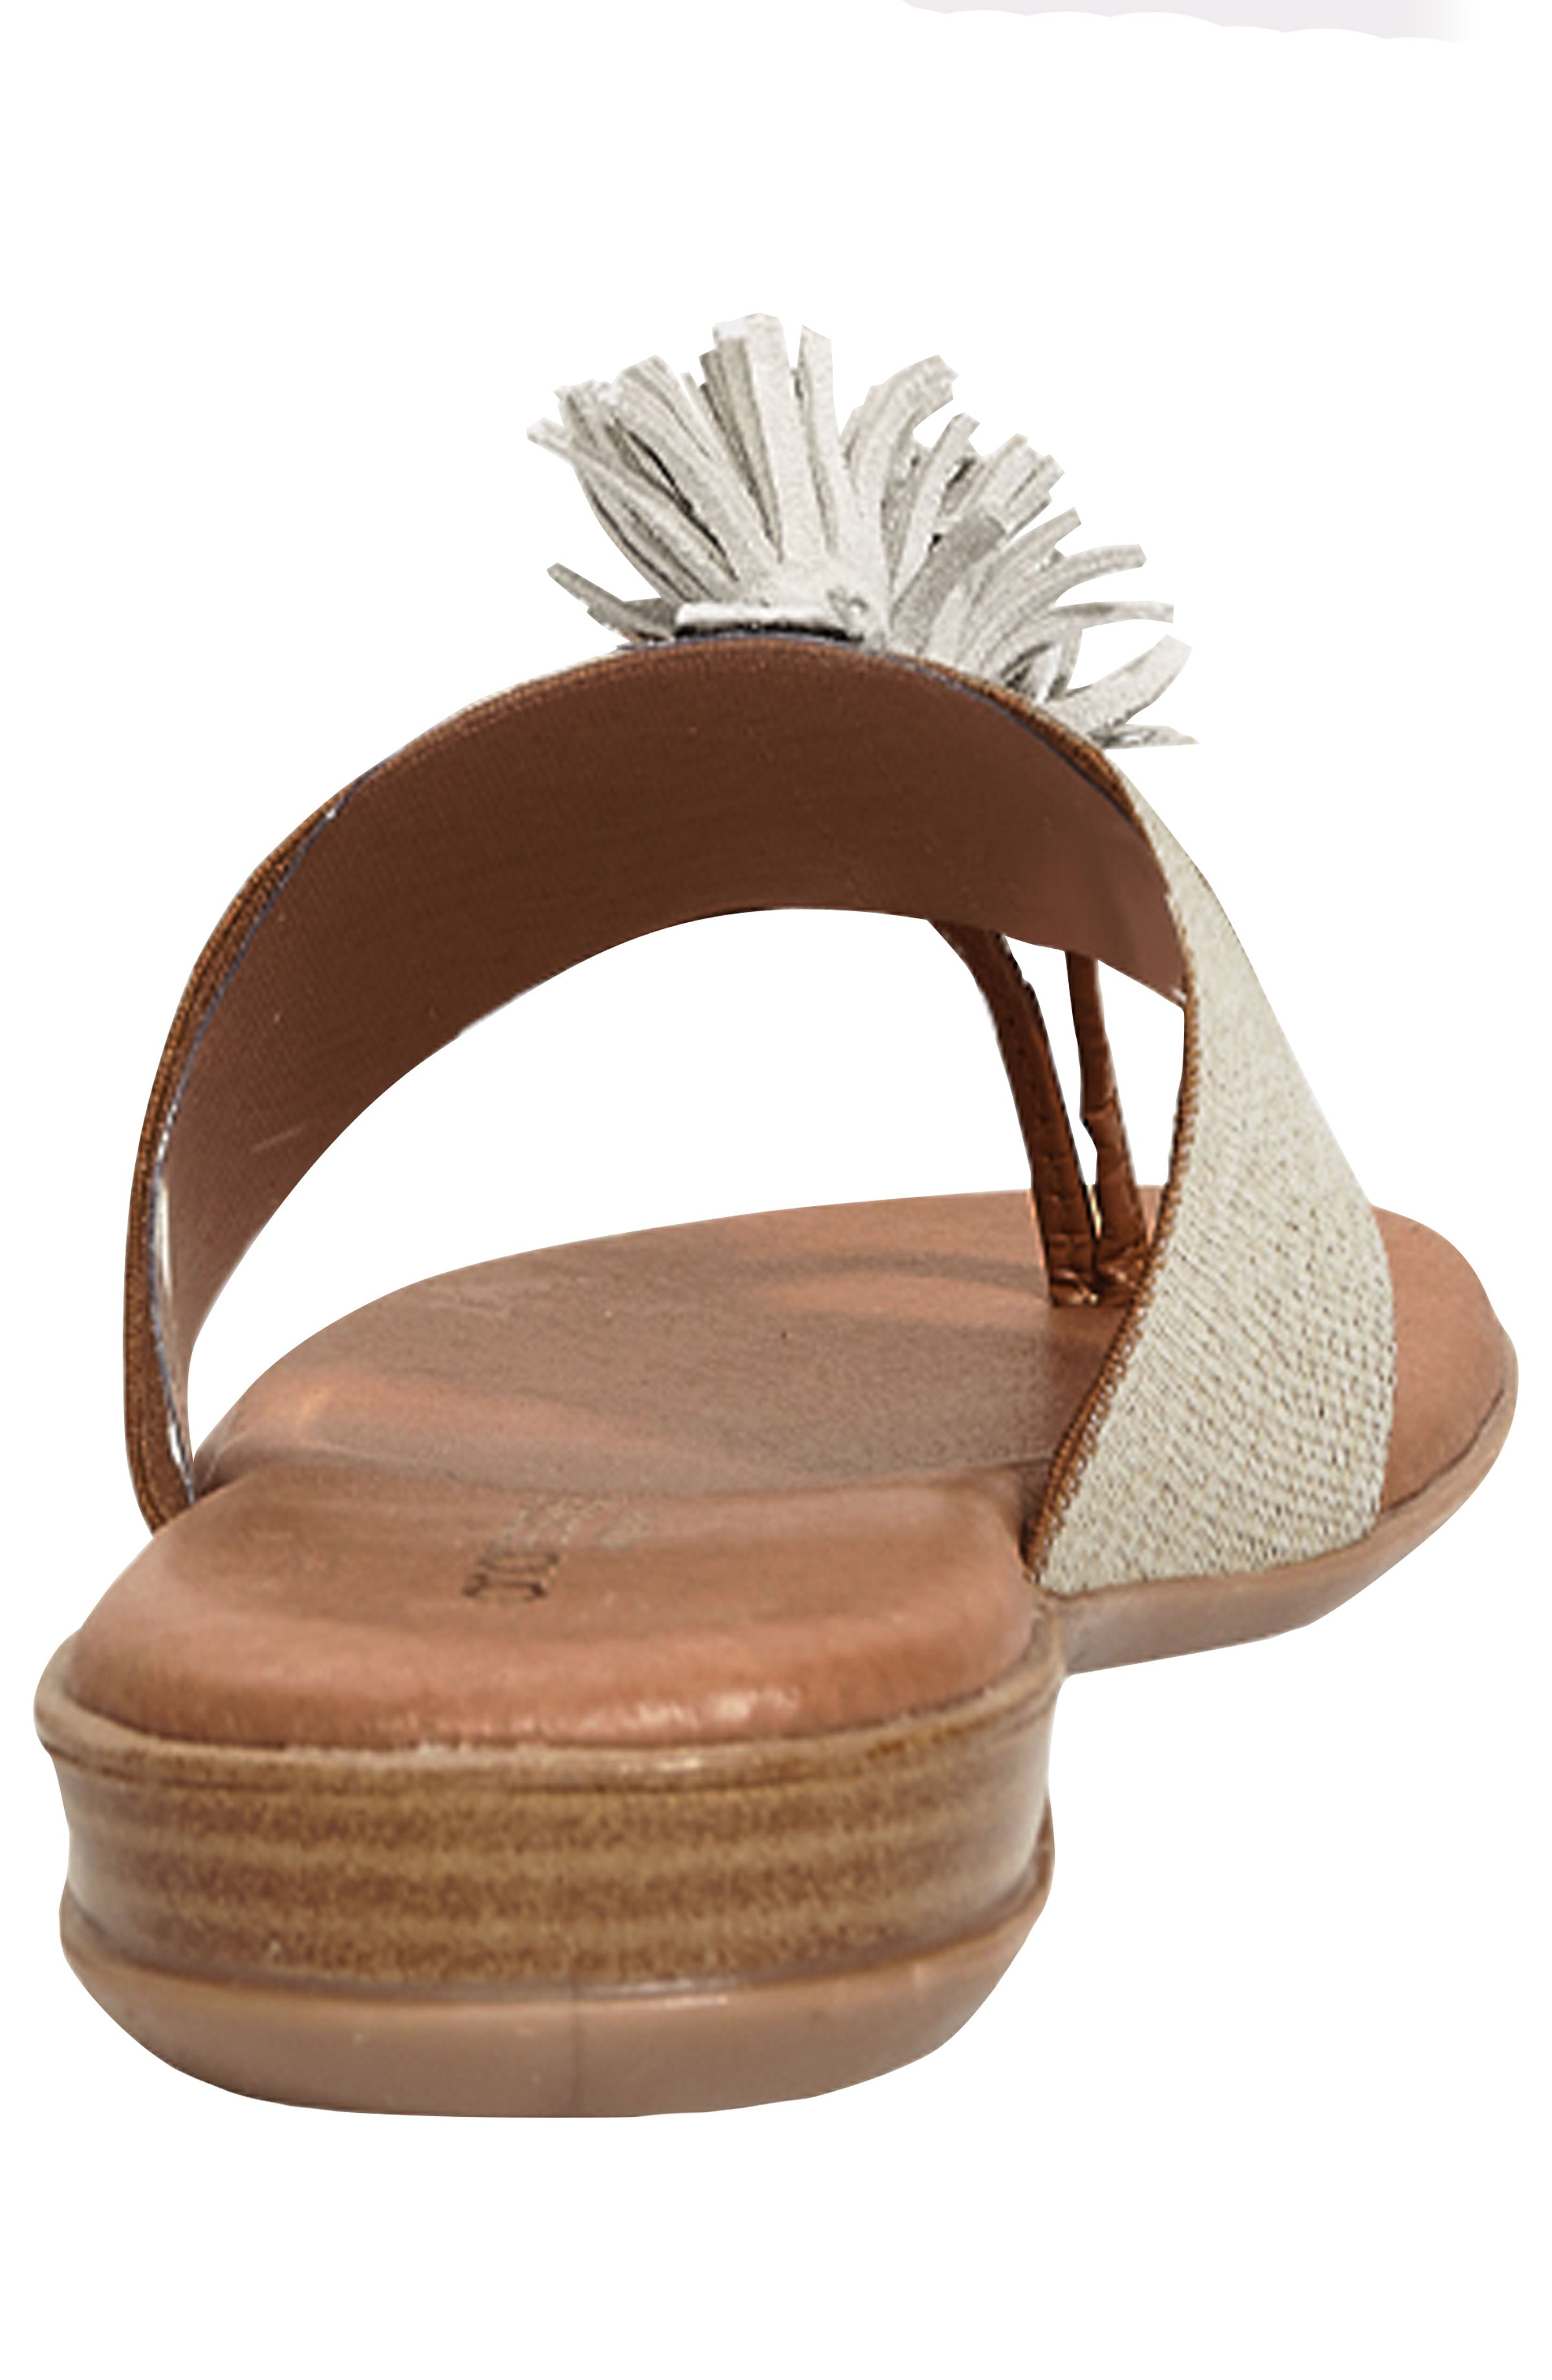 The Elastic Thong Sandal in Beige Linen